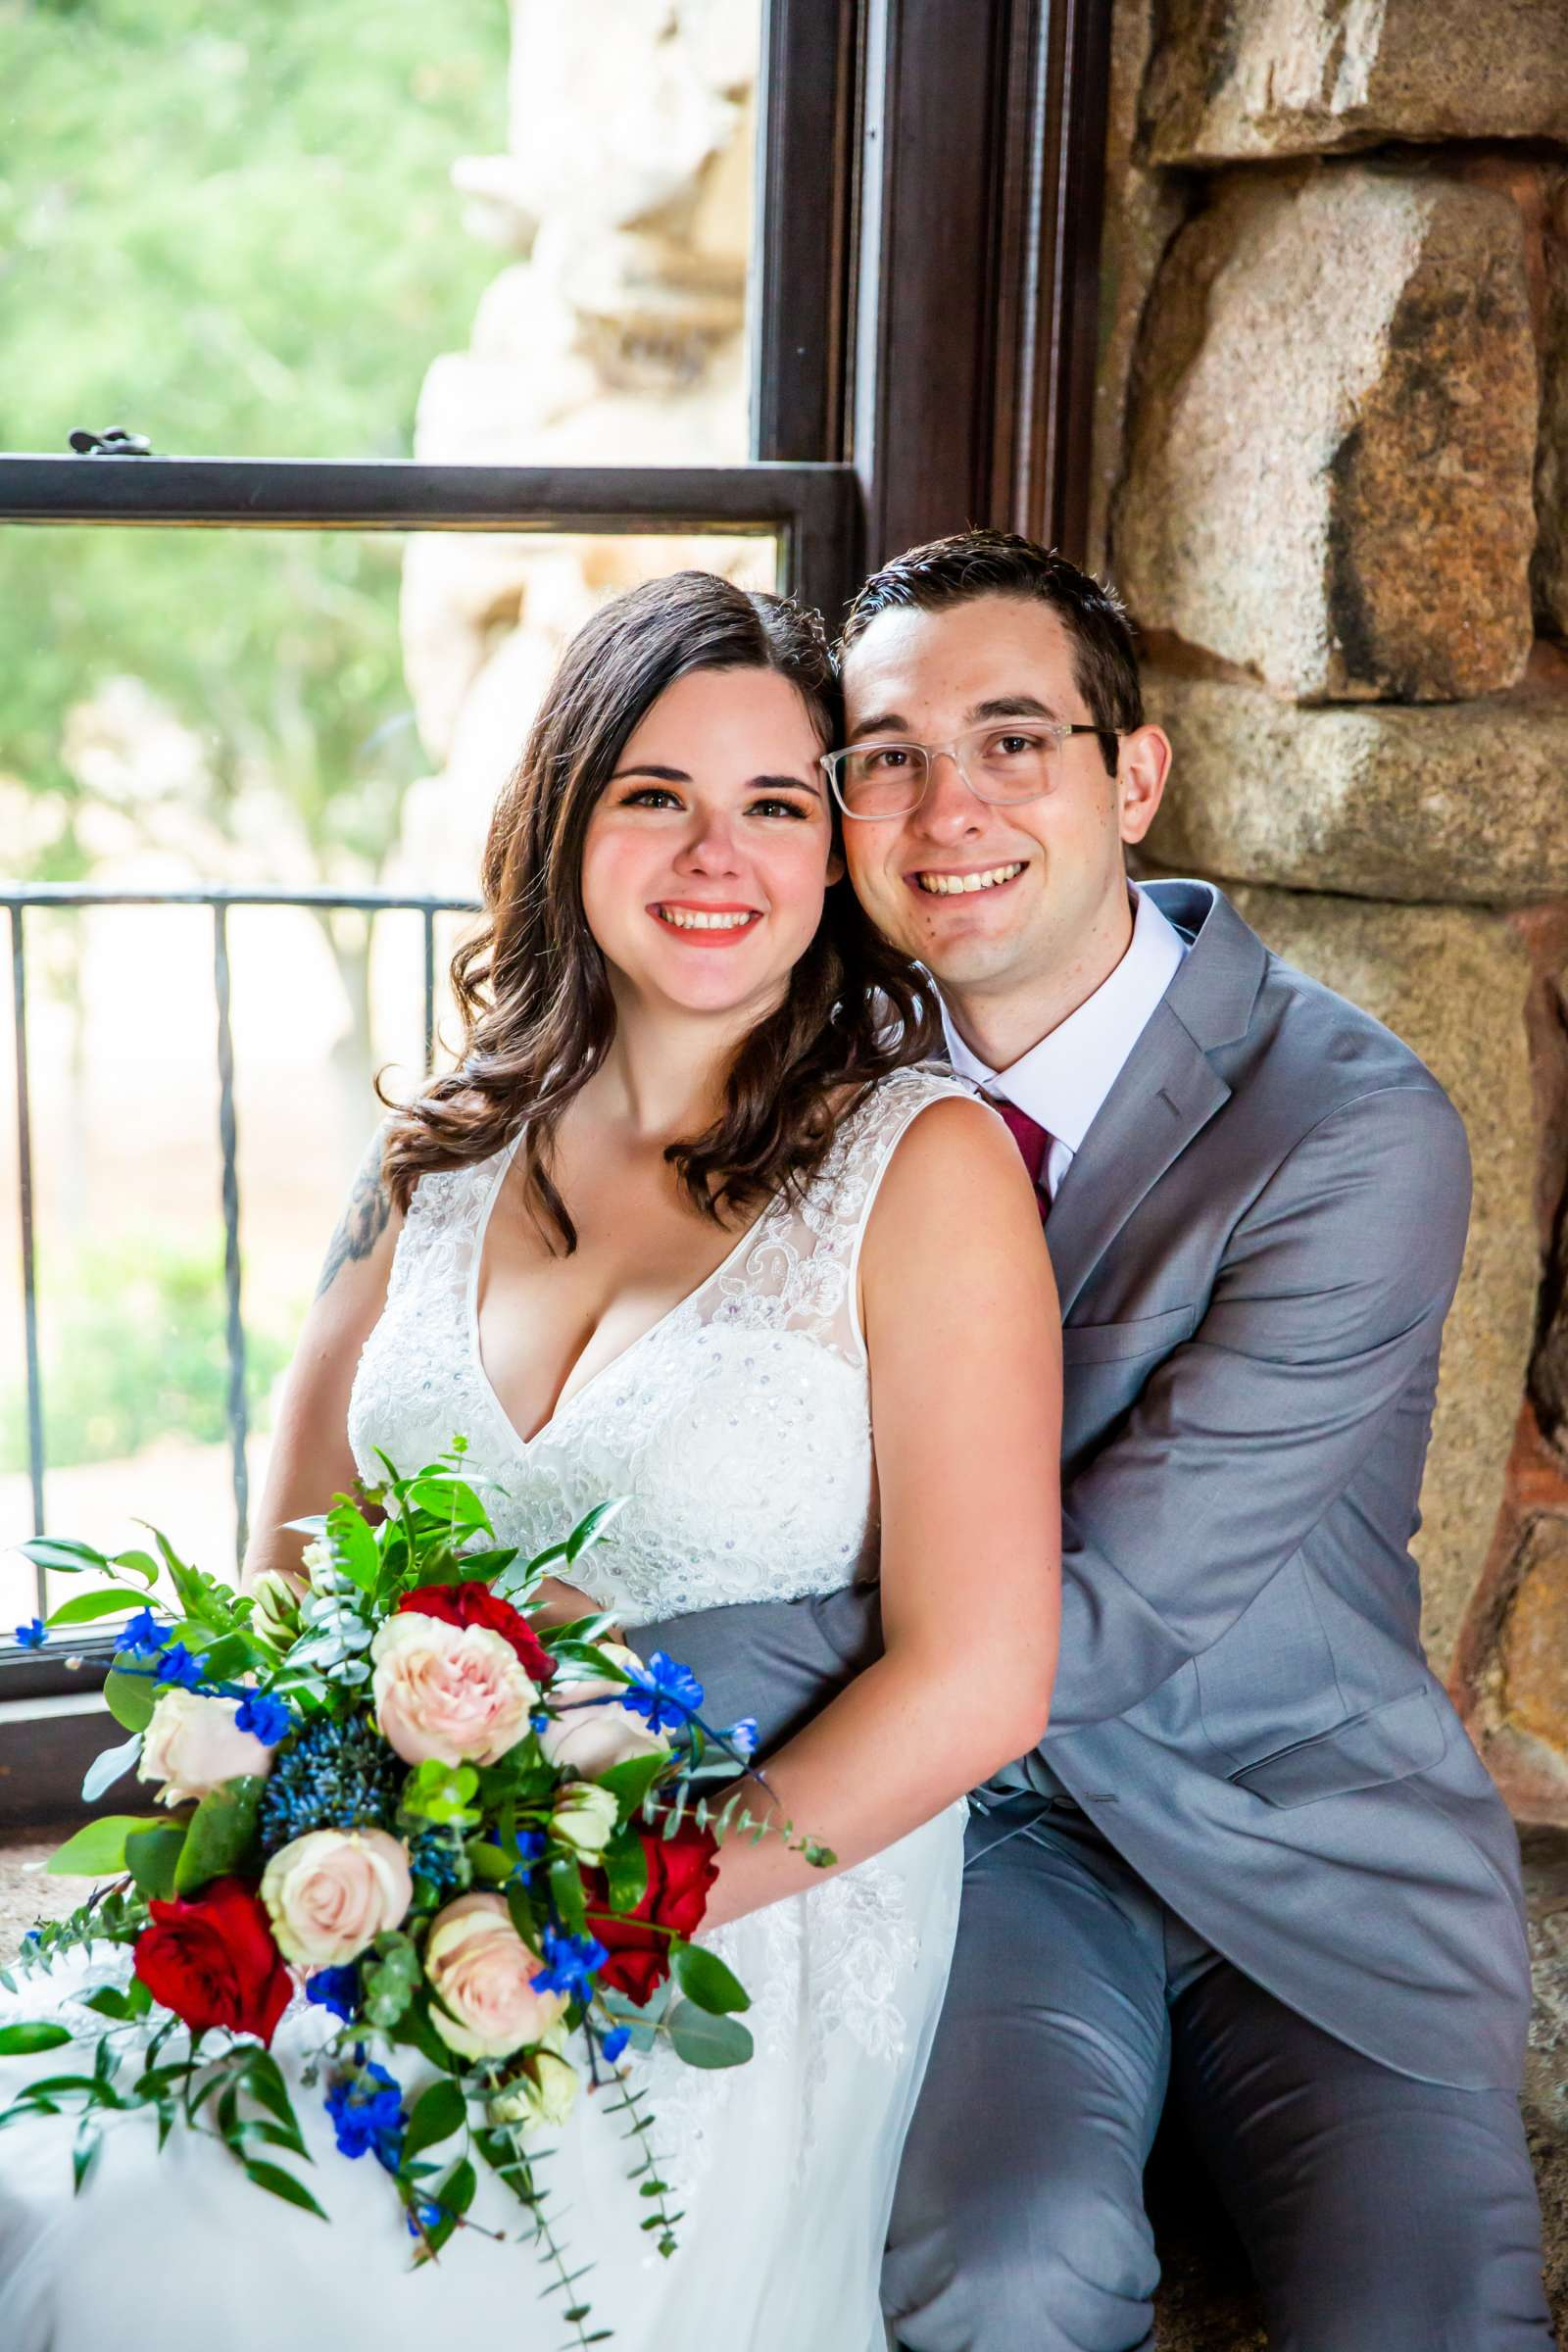 Mt Woodson Castle Wedding, Valerie and Ian Wedding Photo #31 by True Photography